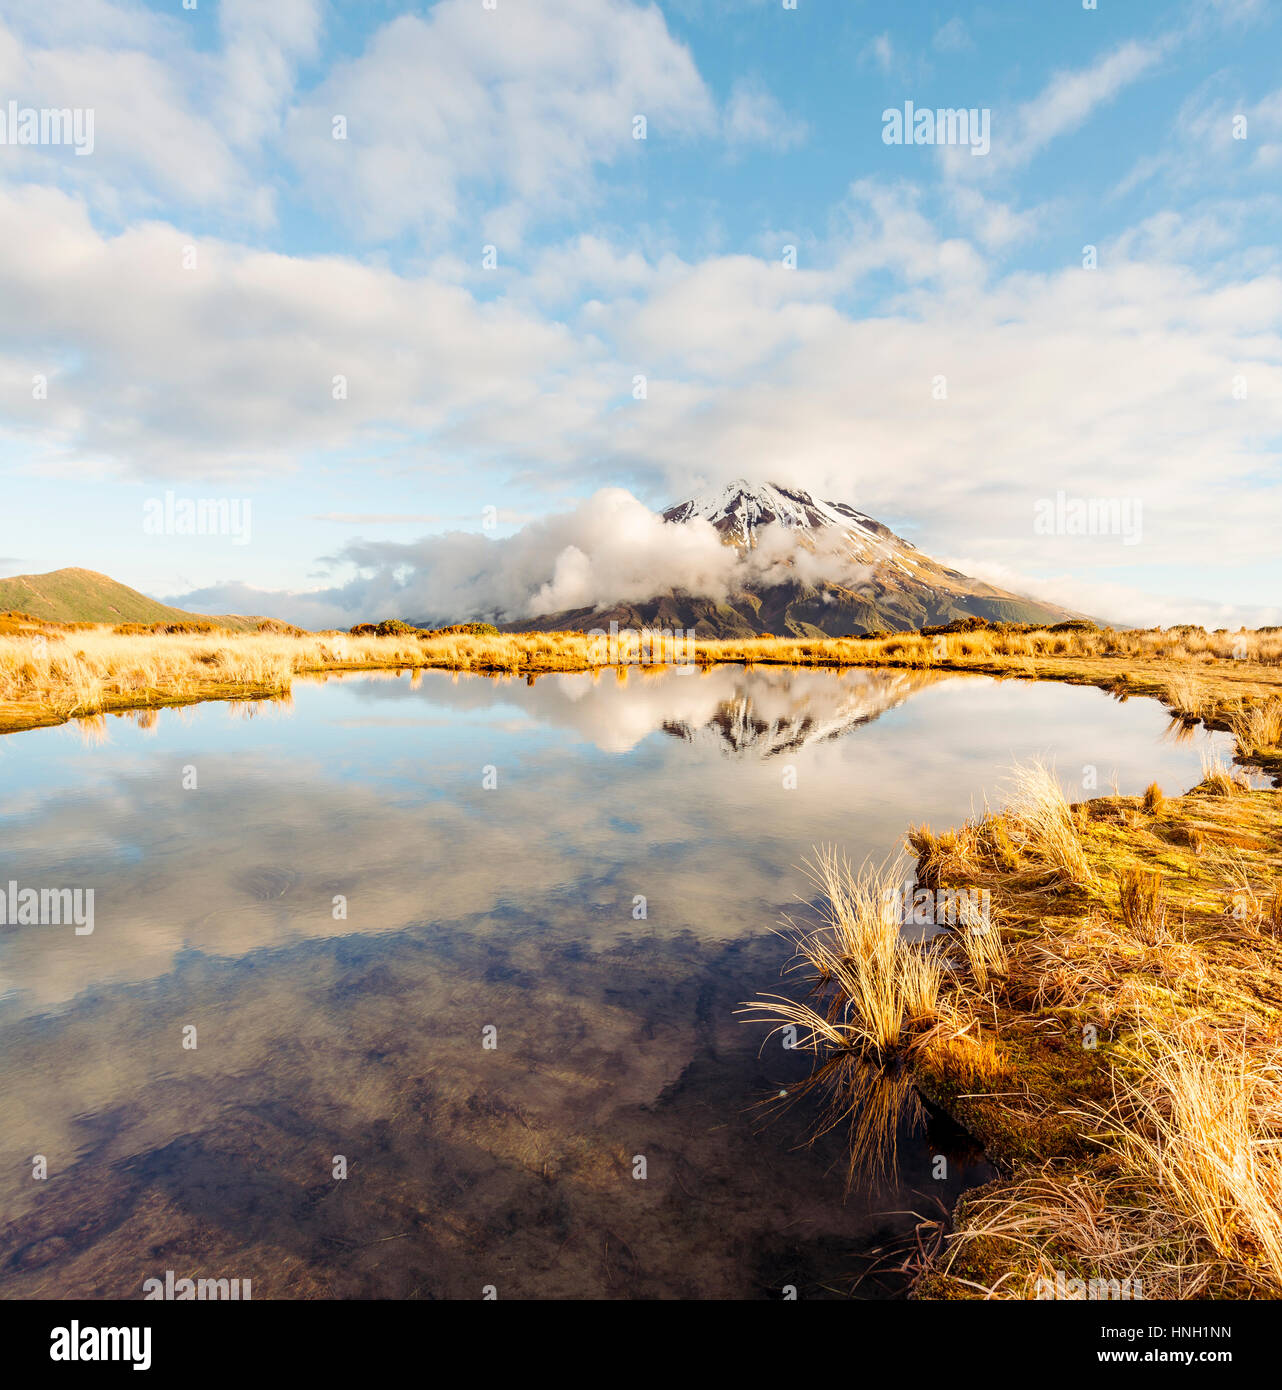 Reflection in Puakai Tarn, stratovolcano Mount Taranaki or Mount Egmont, Egmont National Park, Taranaki, New Zealand - Stock Image